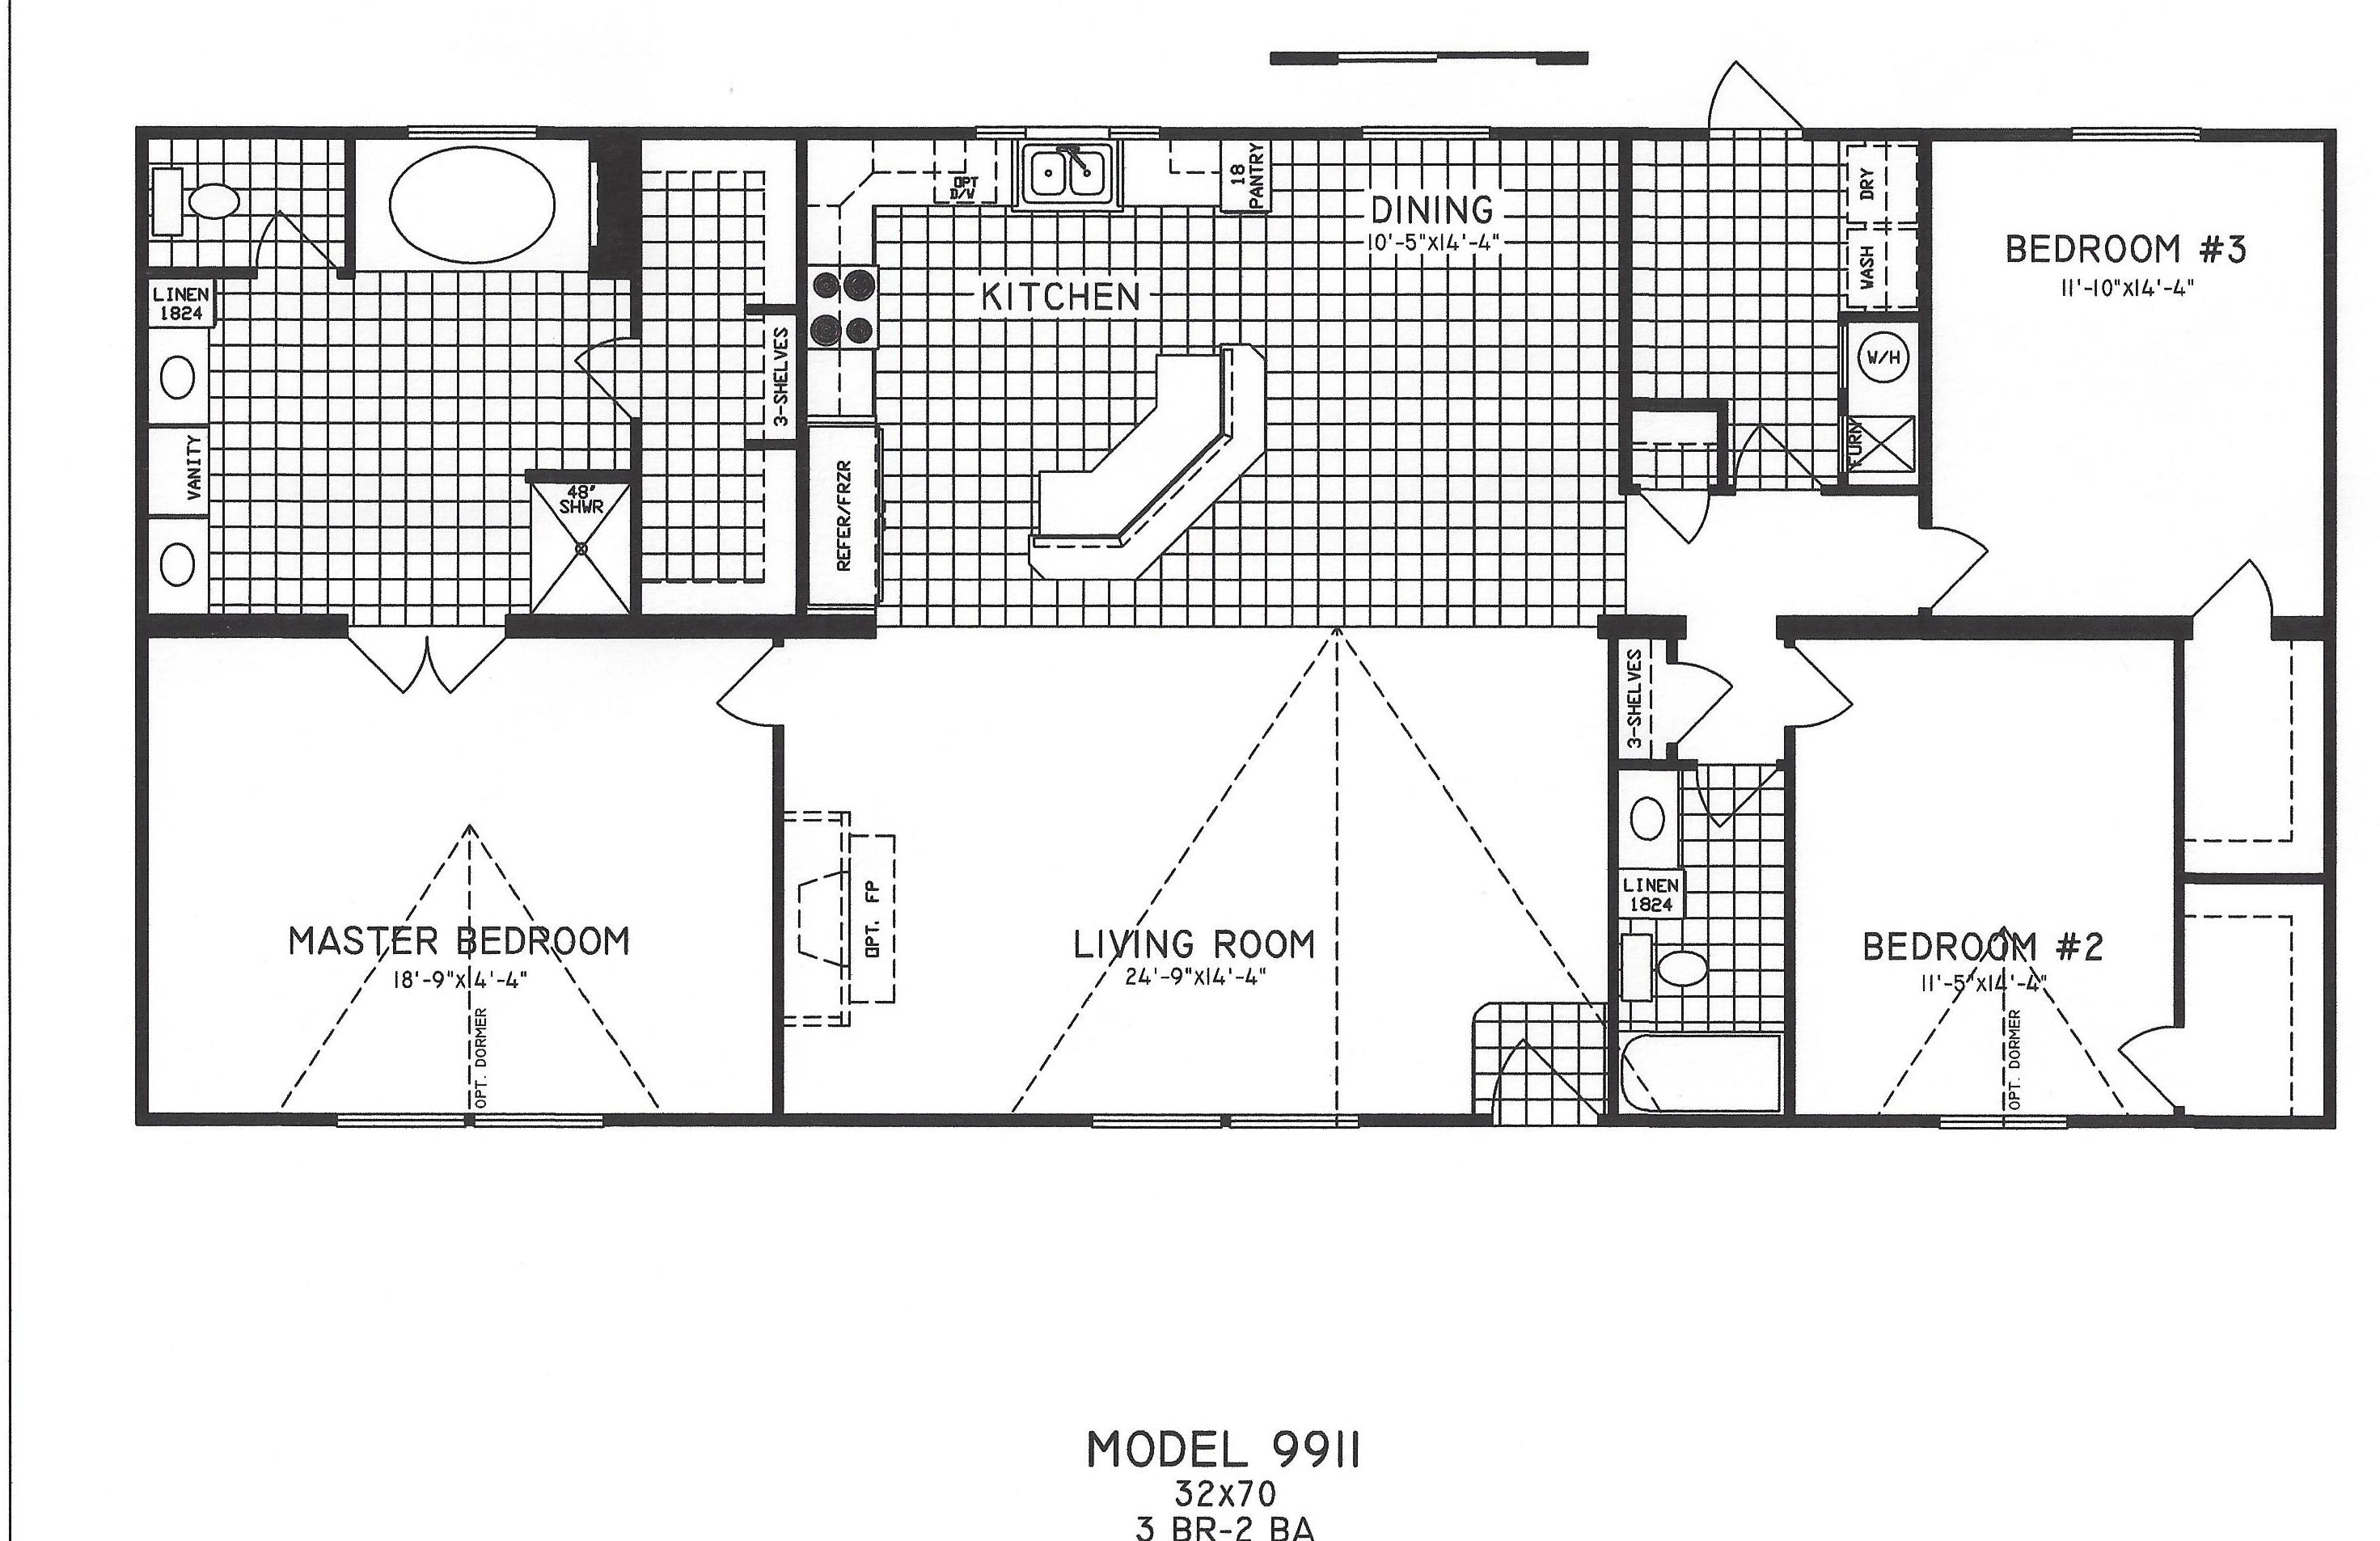 c layout plan all modular living oversized foot and with home steel bedroom upgraded homes freezer manufactured has floor room refer hawks this appliances it stainless bath open combo